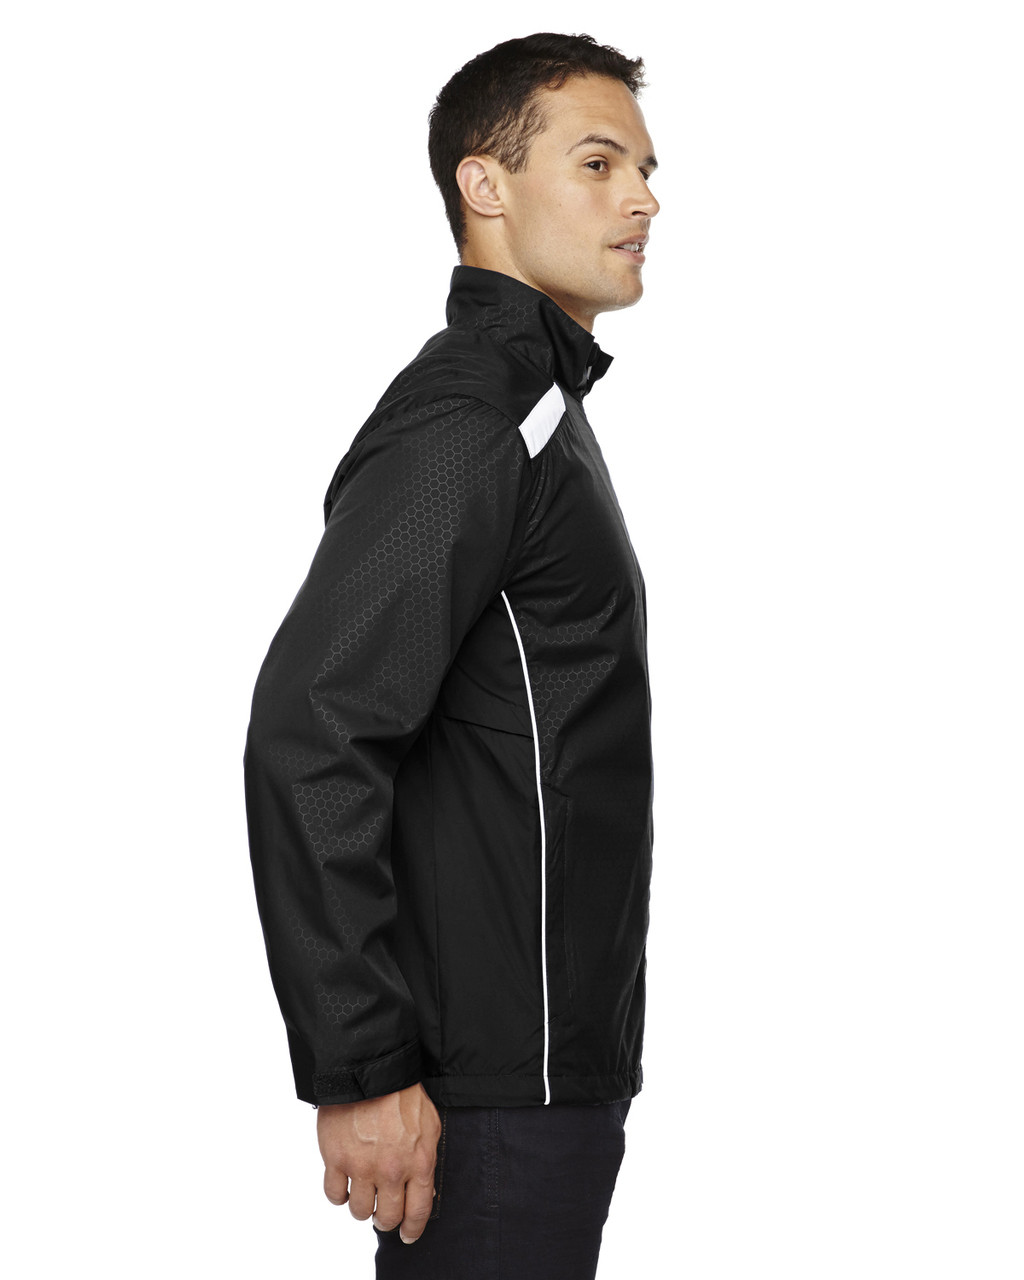 Black-side 88188 North End Lightweight Recycled Polyester Jacket with Embossed Print | Blankclothing.ca